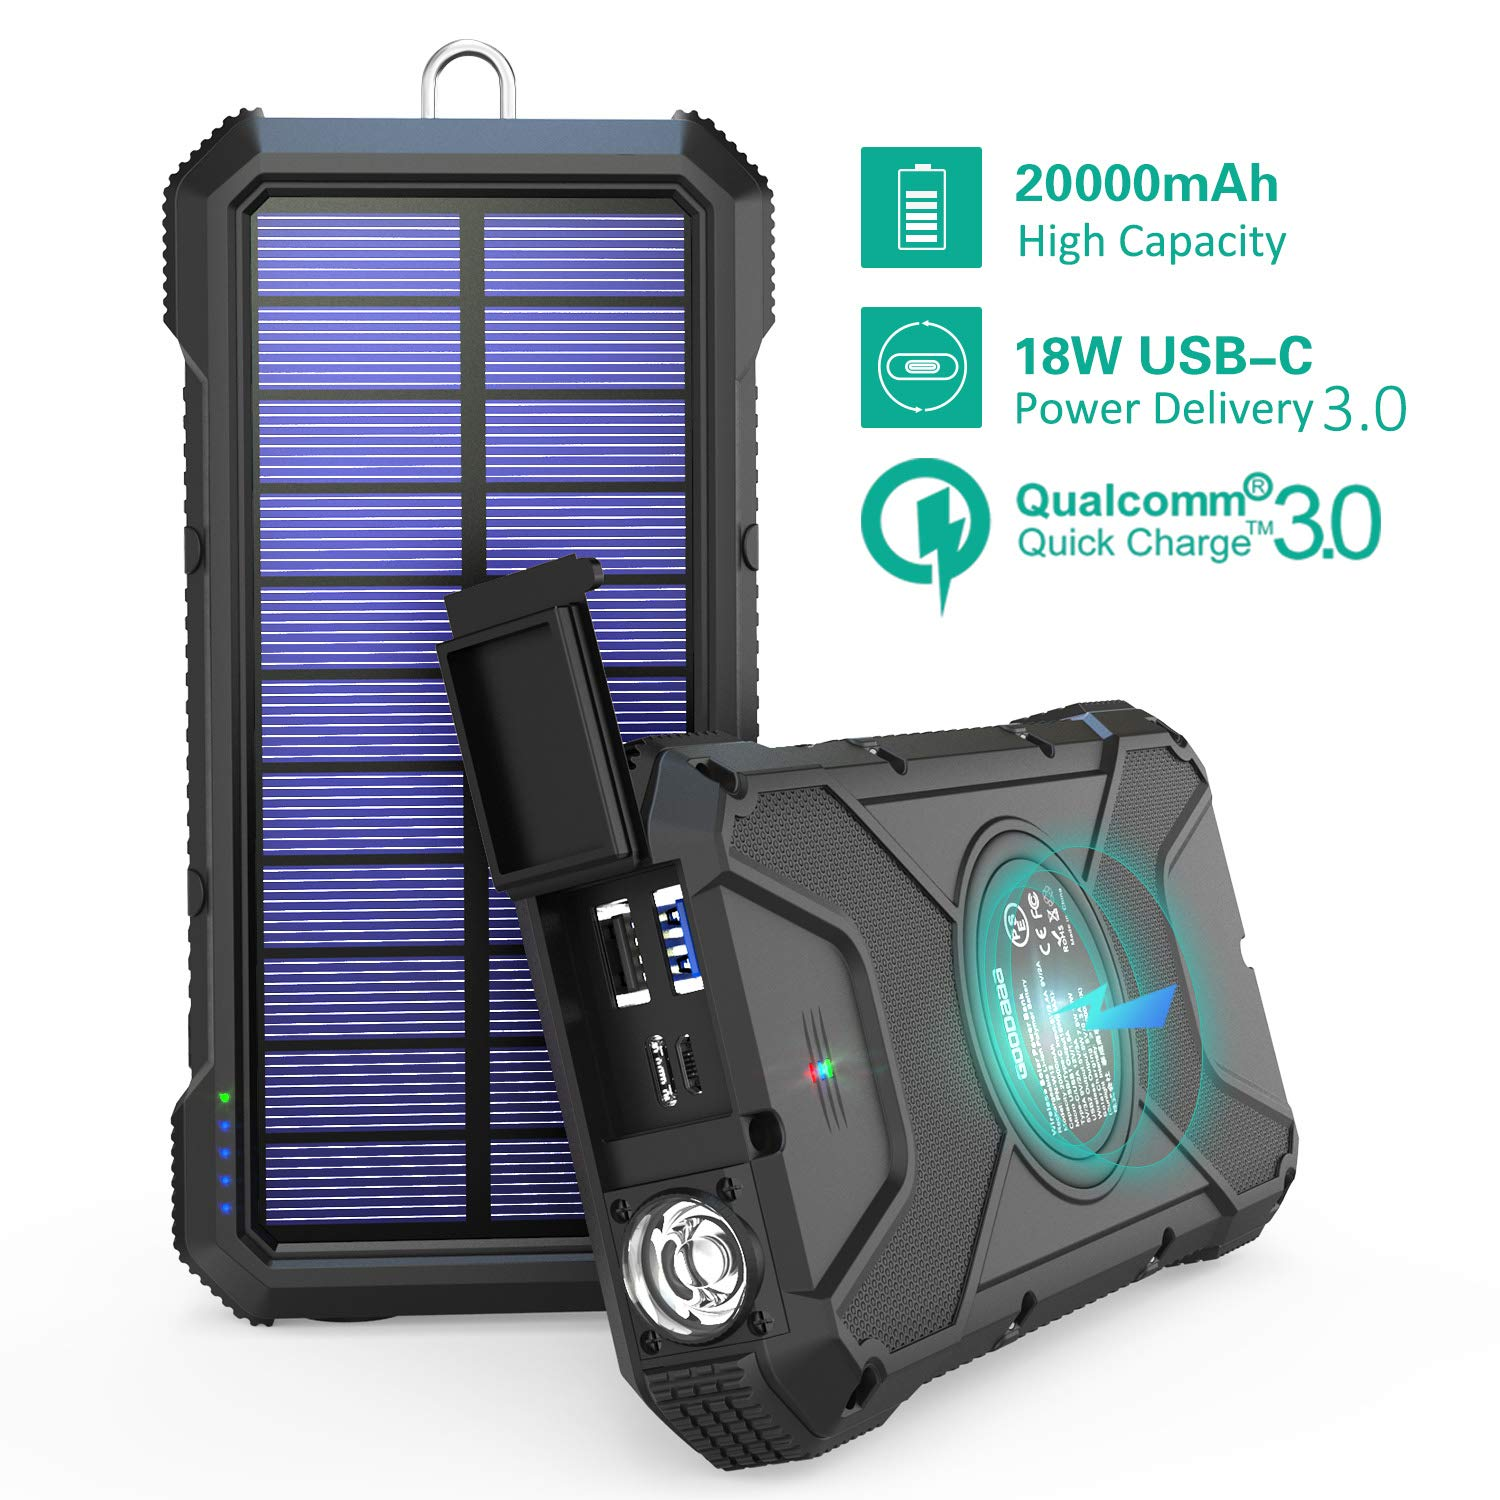 Solar Power Bank 20000mAh, GOODaaa18W PD USB C & QC 3.0 IPX5 Waterproof Solar Charger, 10W/7.5W/5W Fast Wireless Qi Battery Pack with 4 Outputs & 2 Inputs, Built-in Compass and Flashlight by BLAVOR